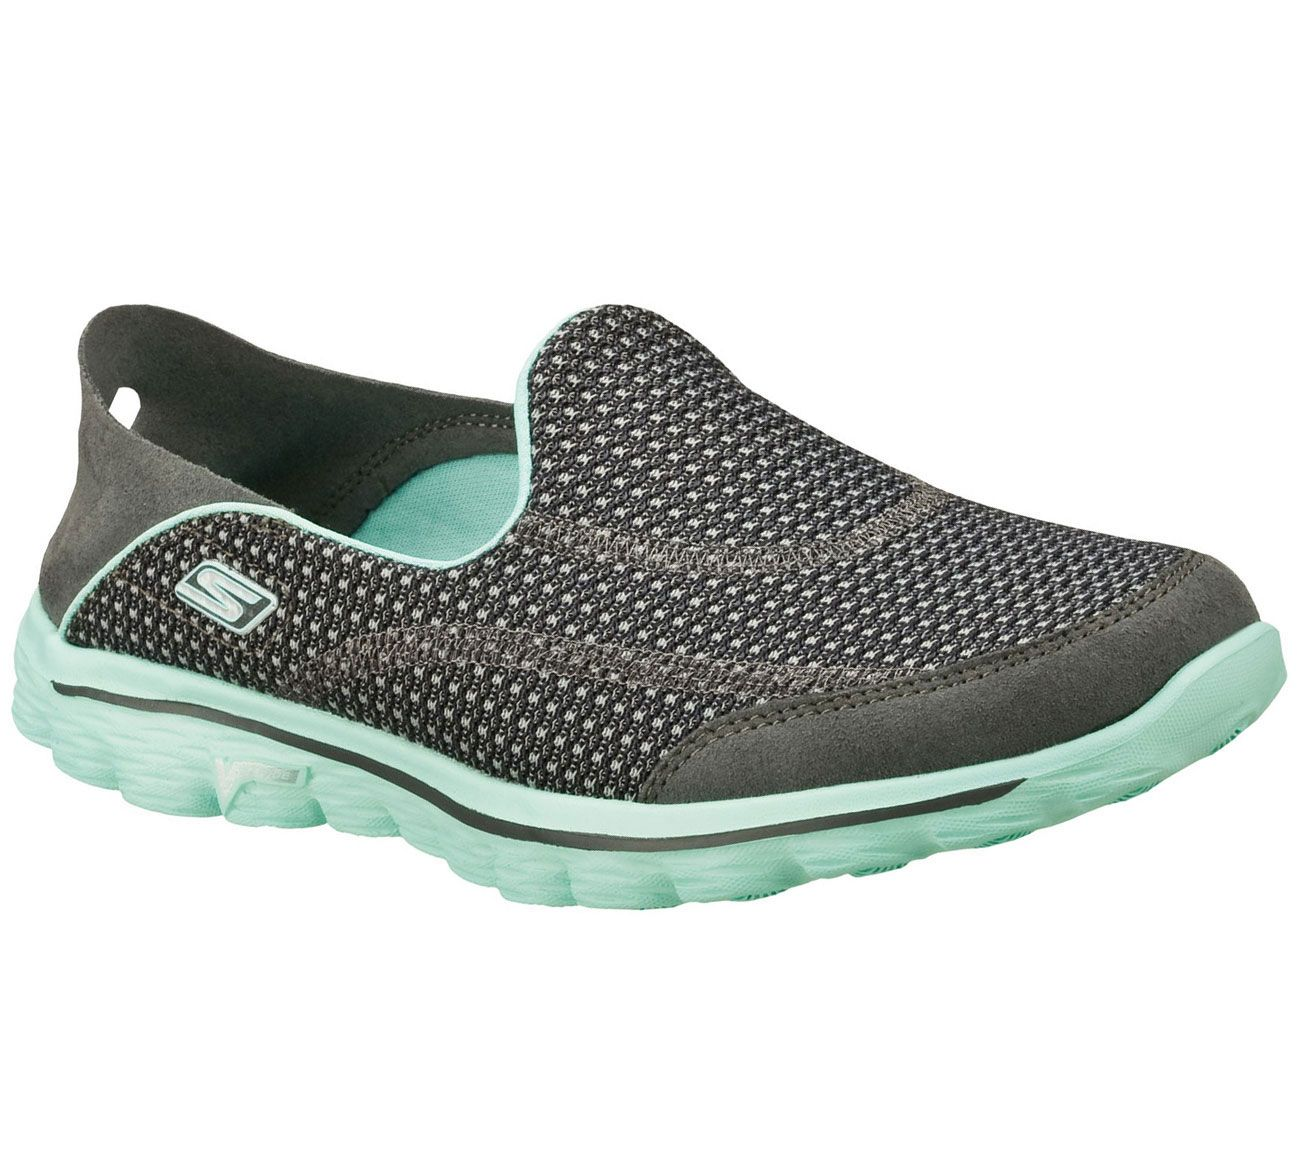 sports shoes best supplier online for sale Skechers GOwalk 2 - Convertible Walking Shoes - shown in ...